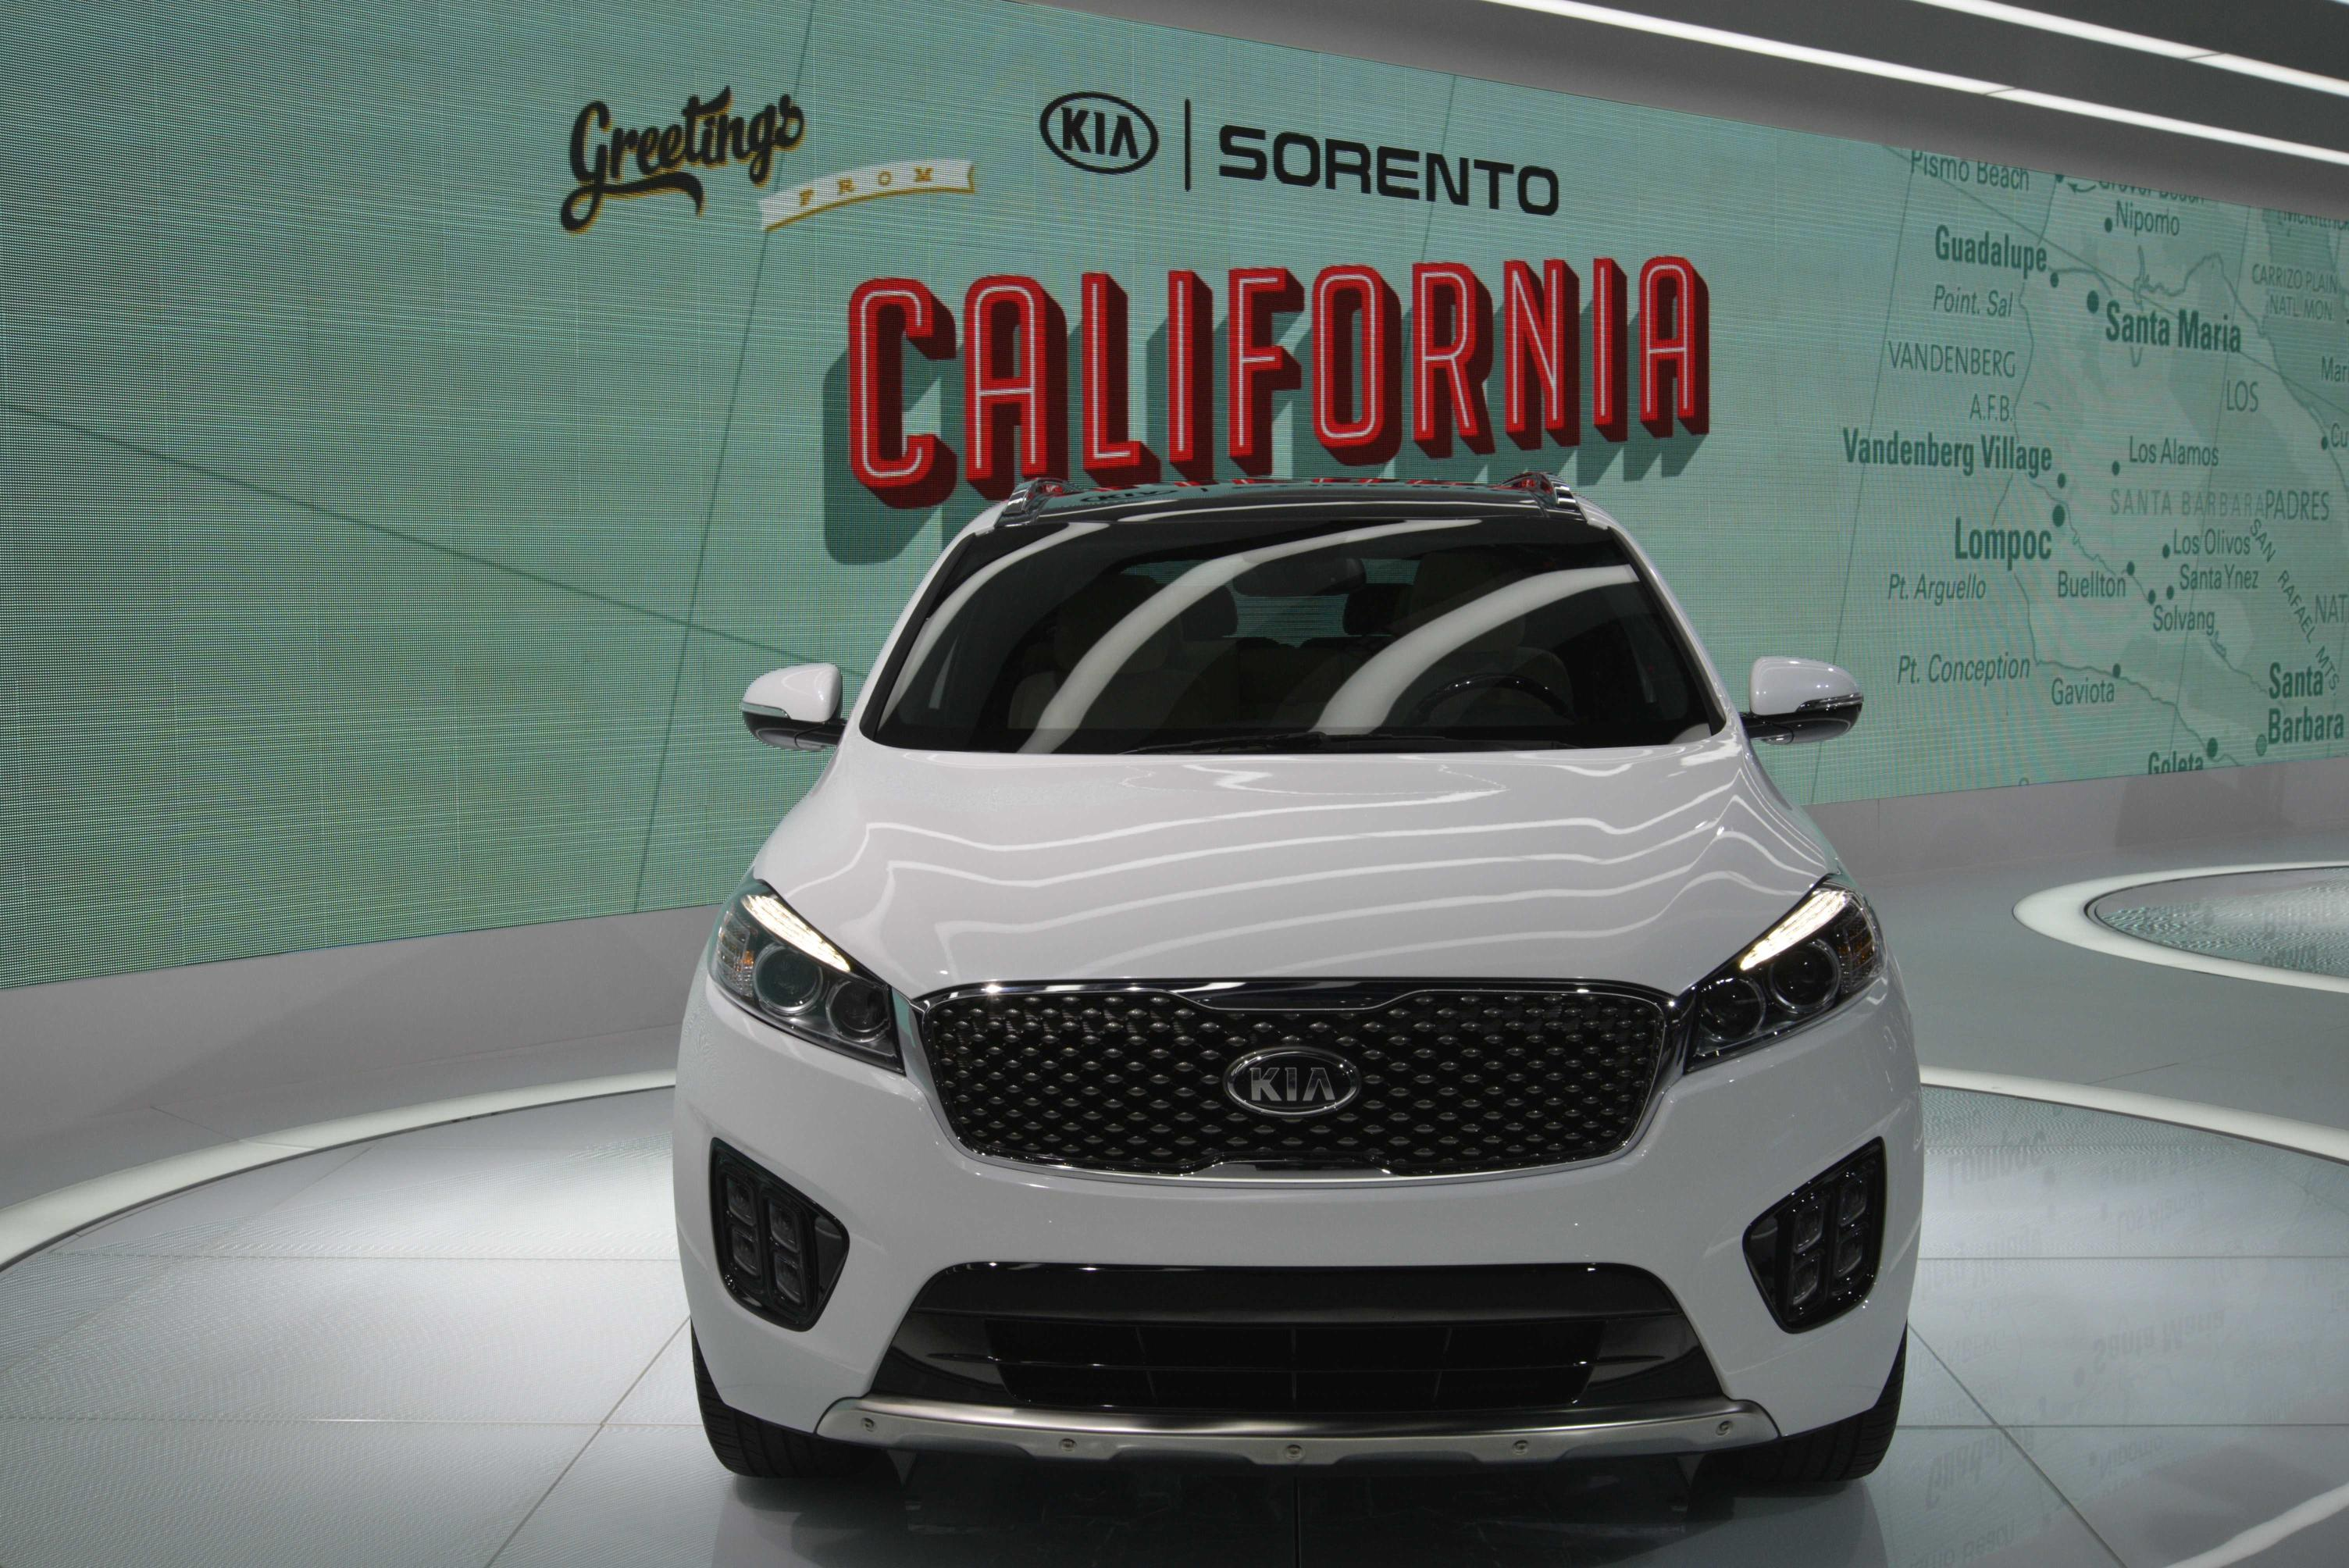 speed kia car angeles motor los vehicle all the seoul debuts concept pictures gallery cars knd su news debut at compact in show auto made unveiled top having world its la international suv new